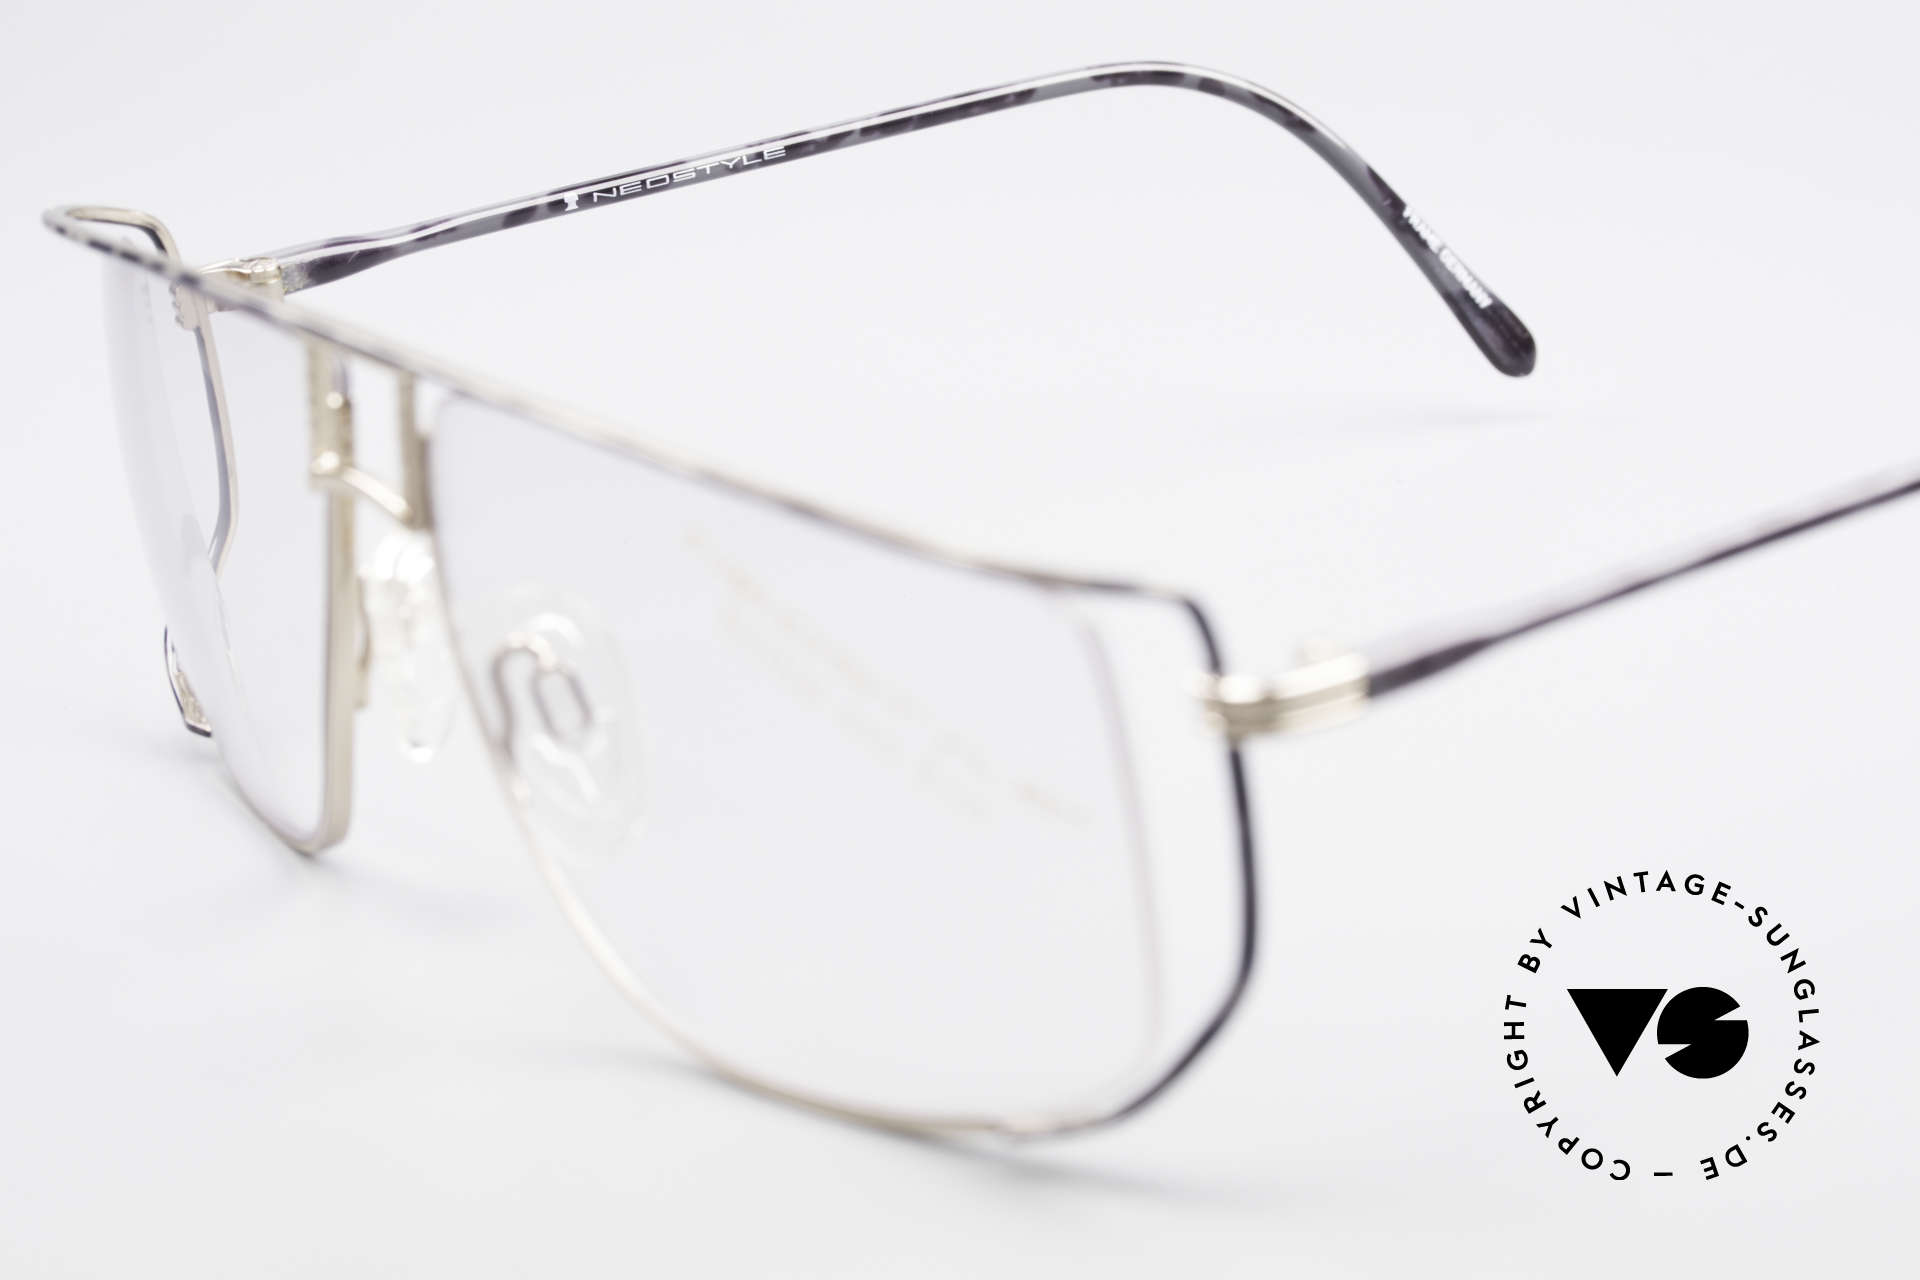 Neostyle Jet 30 Small True Vintage No Retro Frame, NO RETRO specs; but an unworn old original from 1986, Made for Men and Women